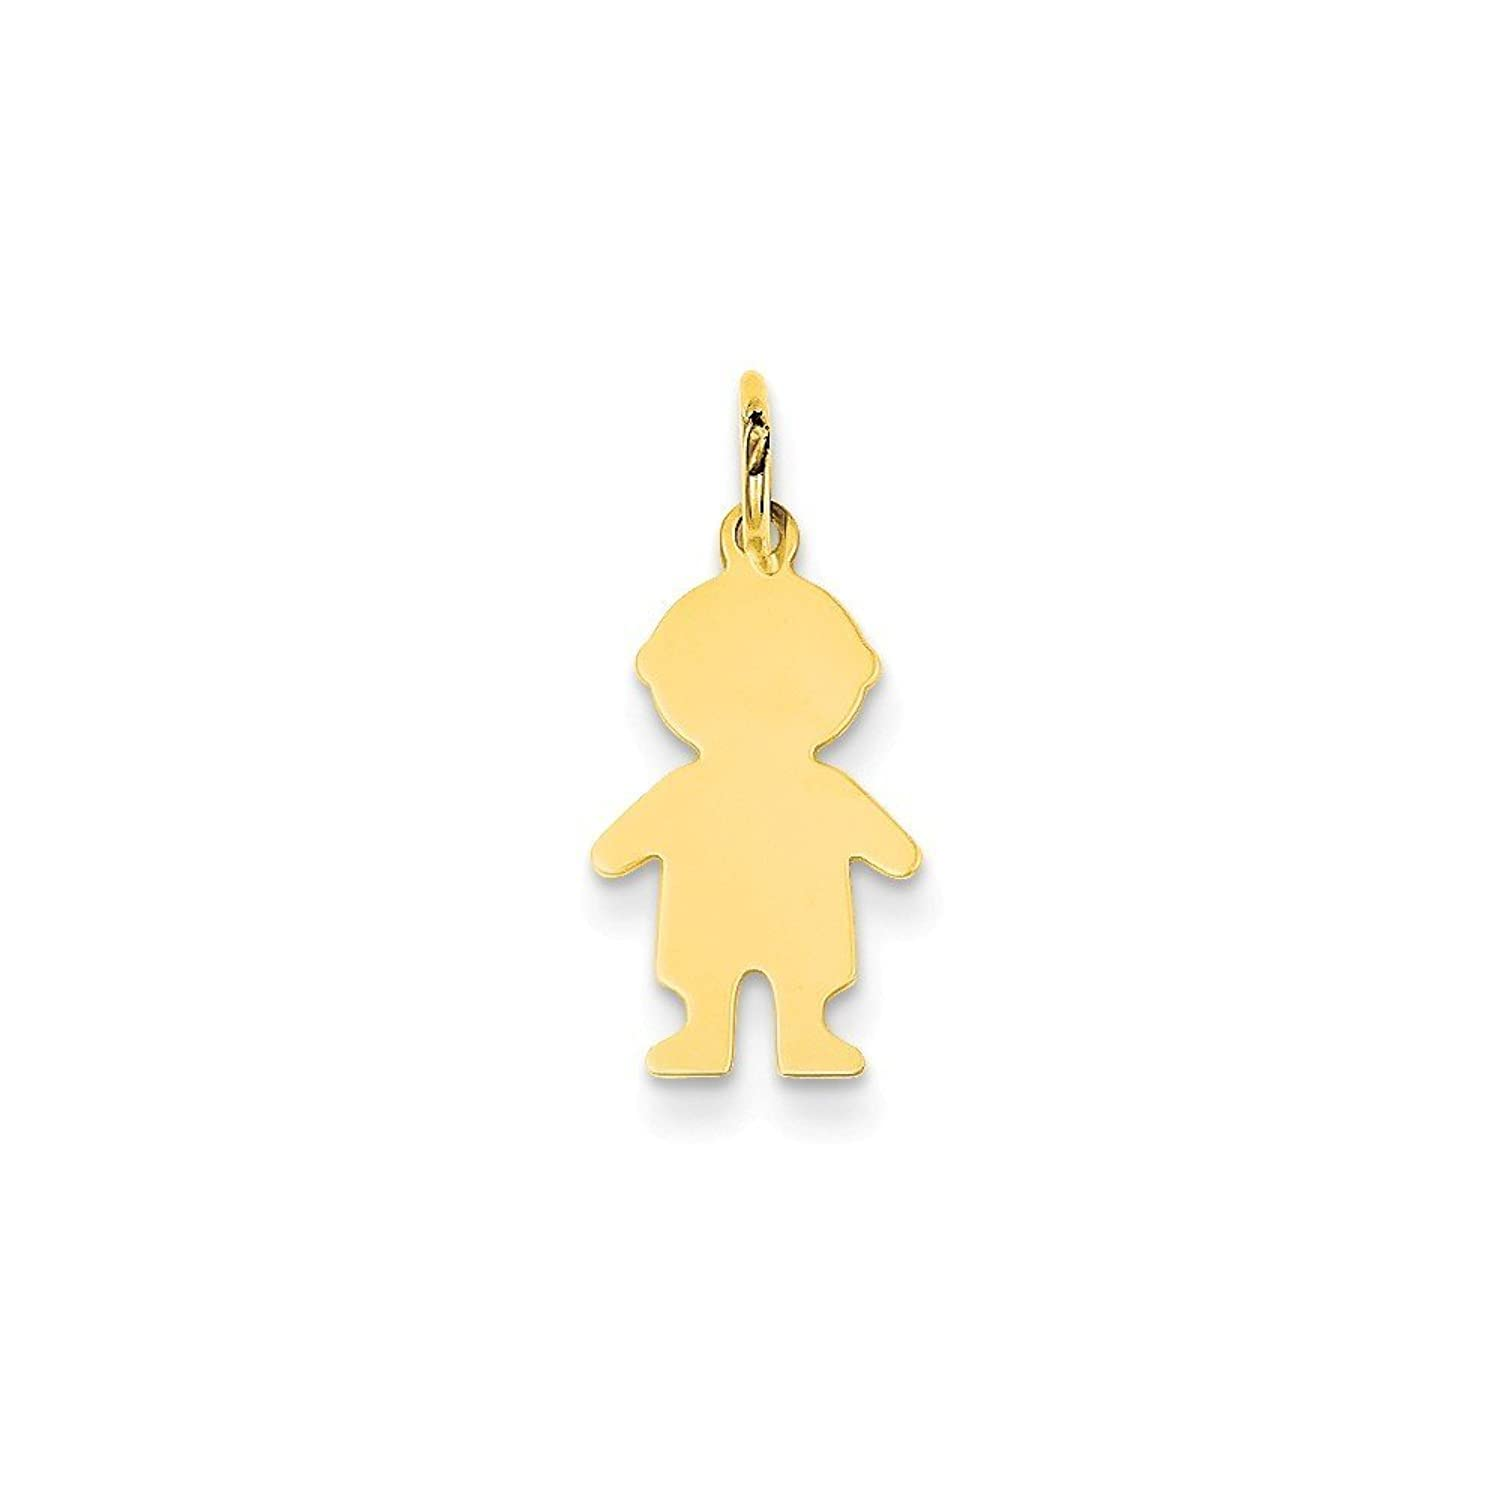 14k Gold Boy Charm Pendant (0.87 in x 0.35 in)